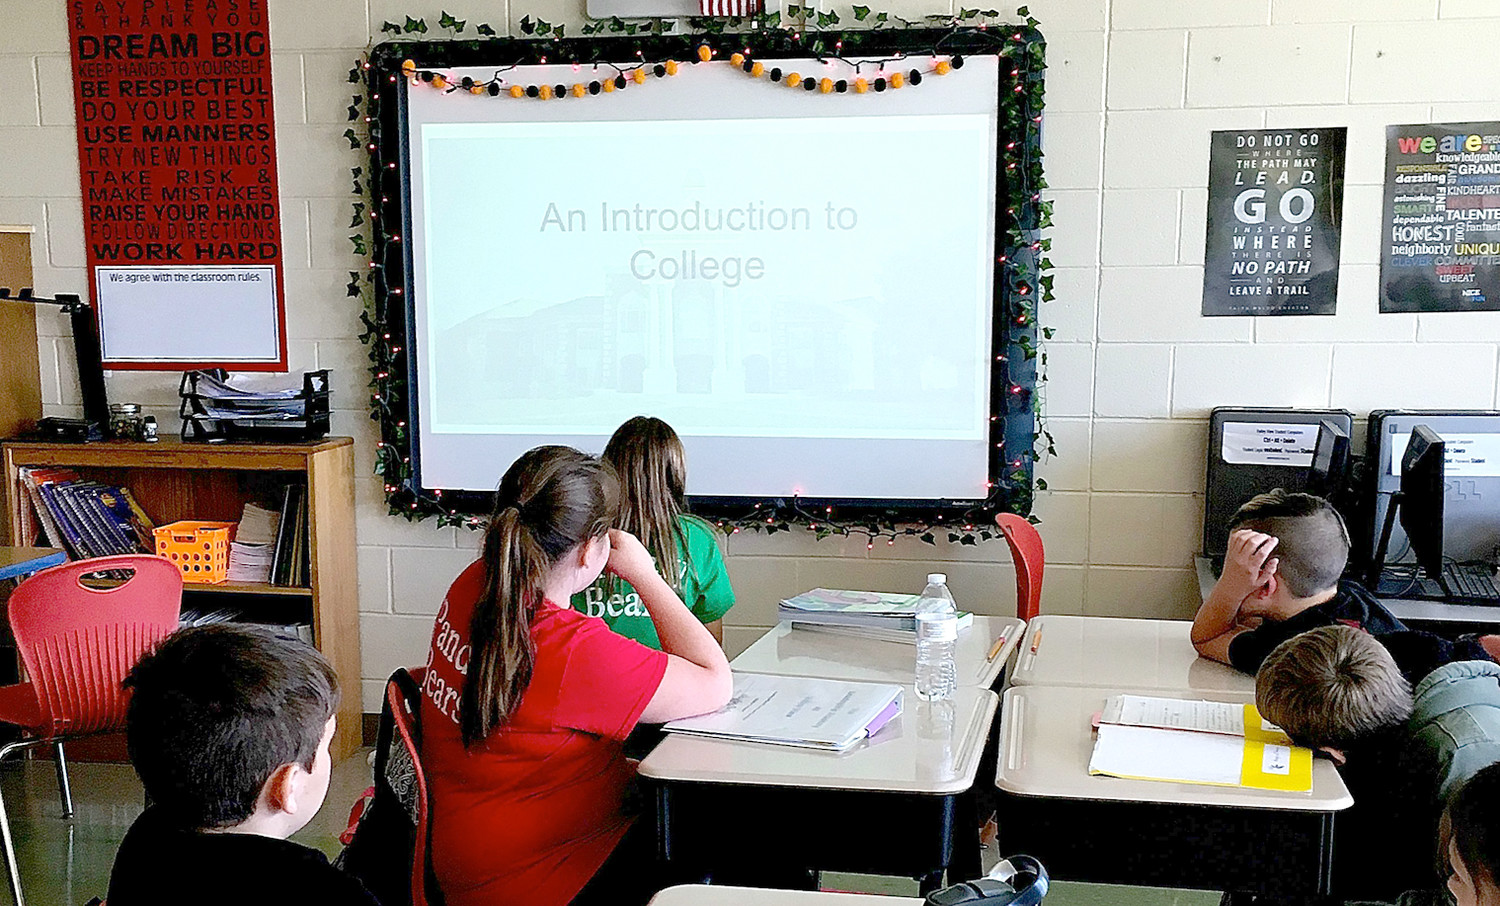 FIFTH-GRADERS at Valley View Elementary School listen to a lesson about college options. The school recently led a series of activities emphasizing the opportunities available after high school.